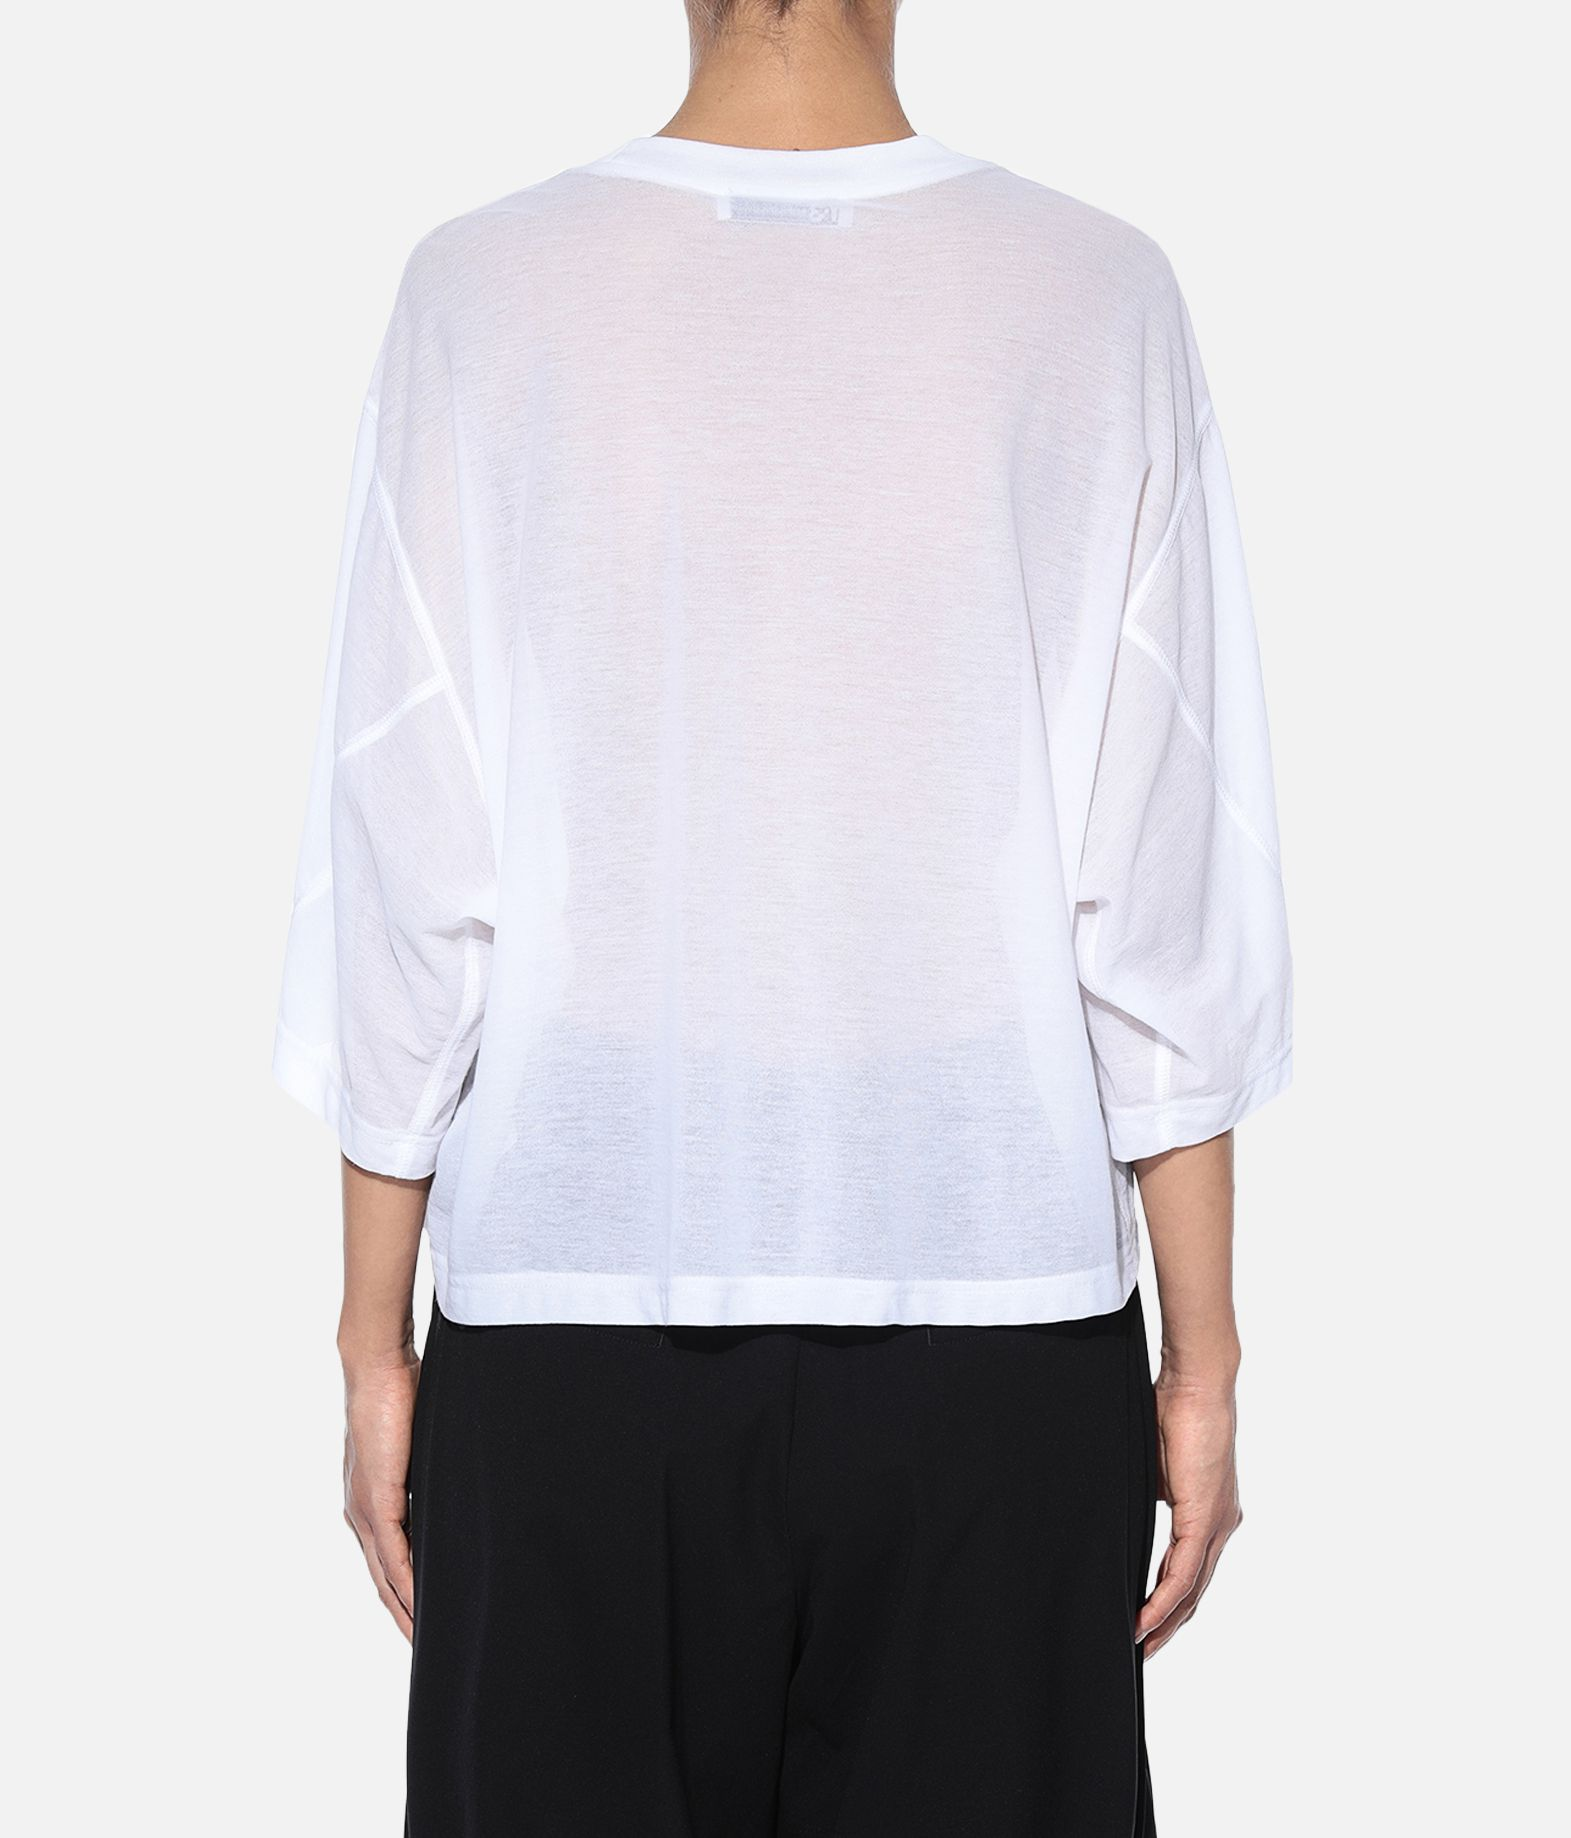 Y-3 Y-3 Yohji Love Sheer Tee Short sleeve t-shirt Woman d